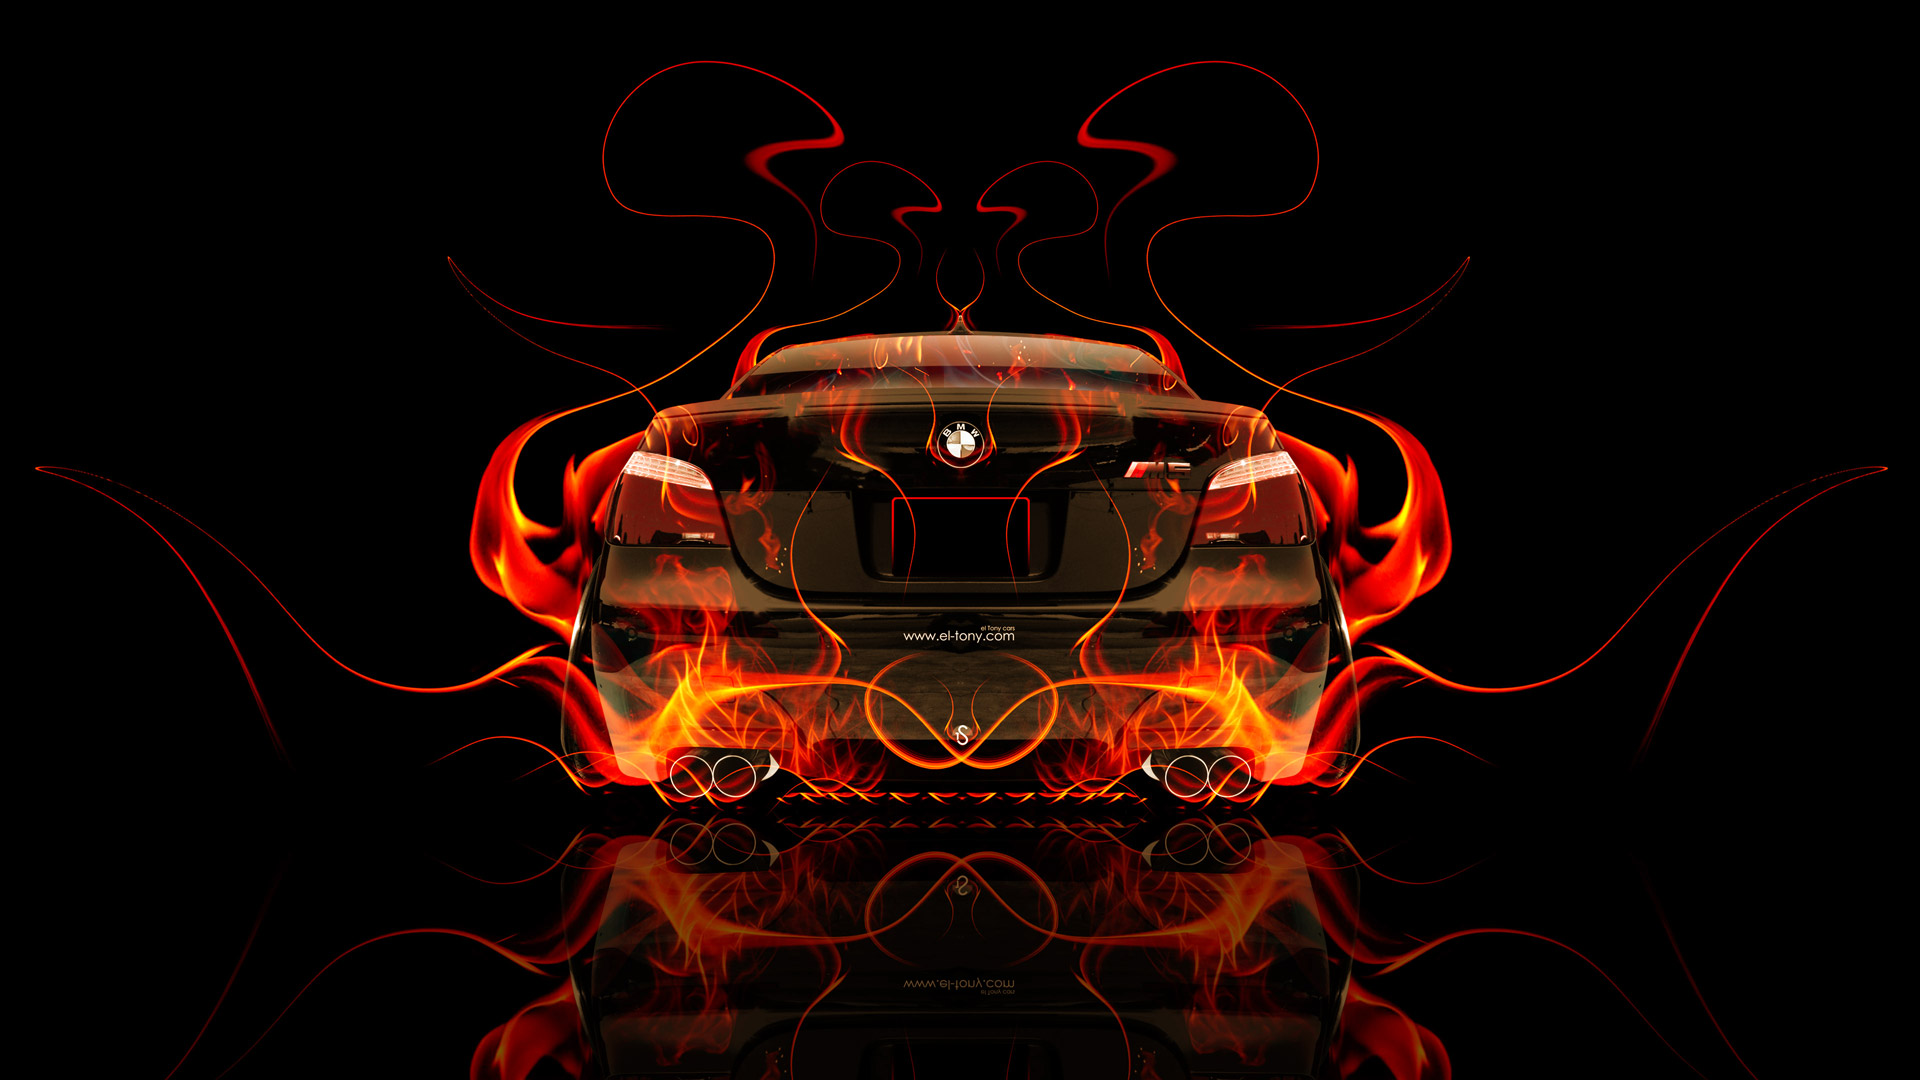 BMW M5 Back Fire Abstract Car 2014